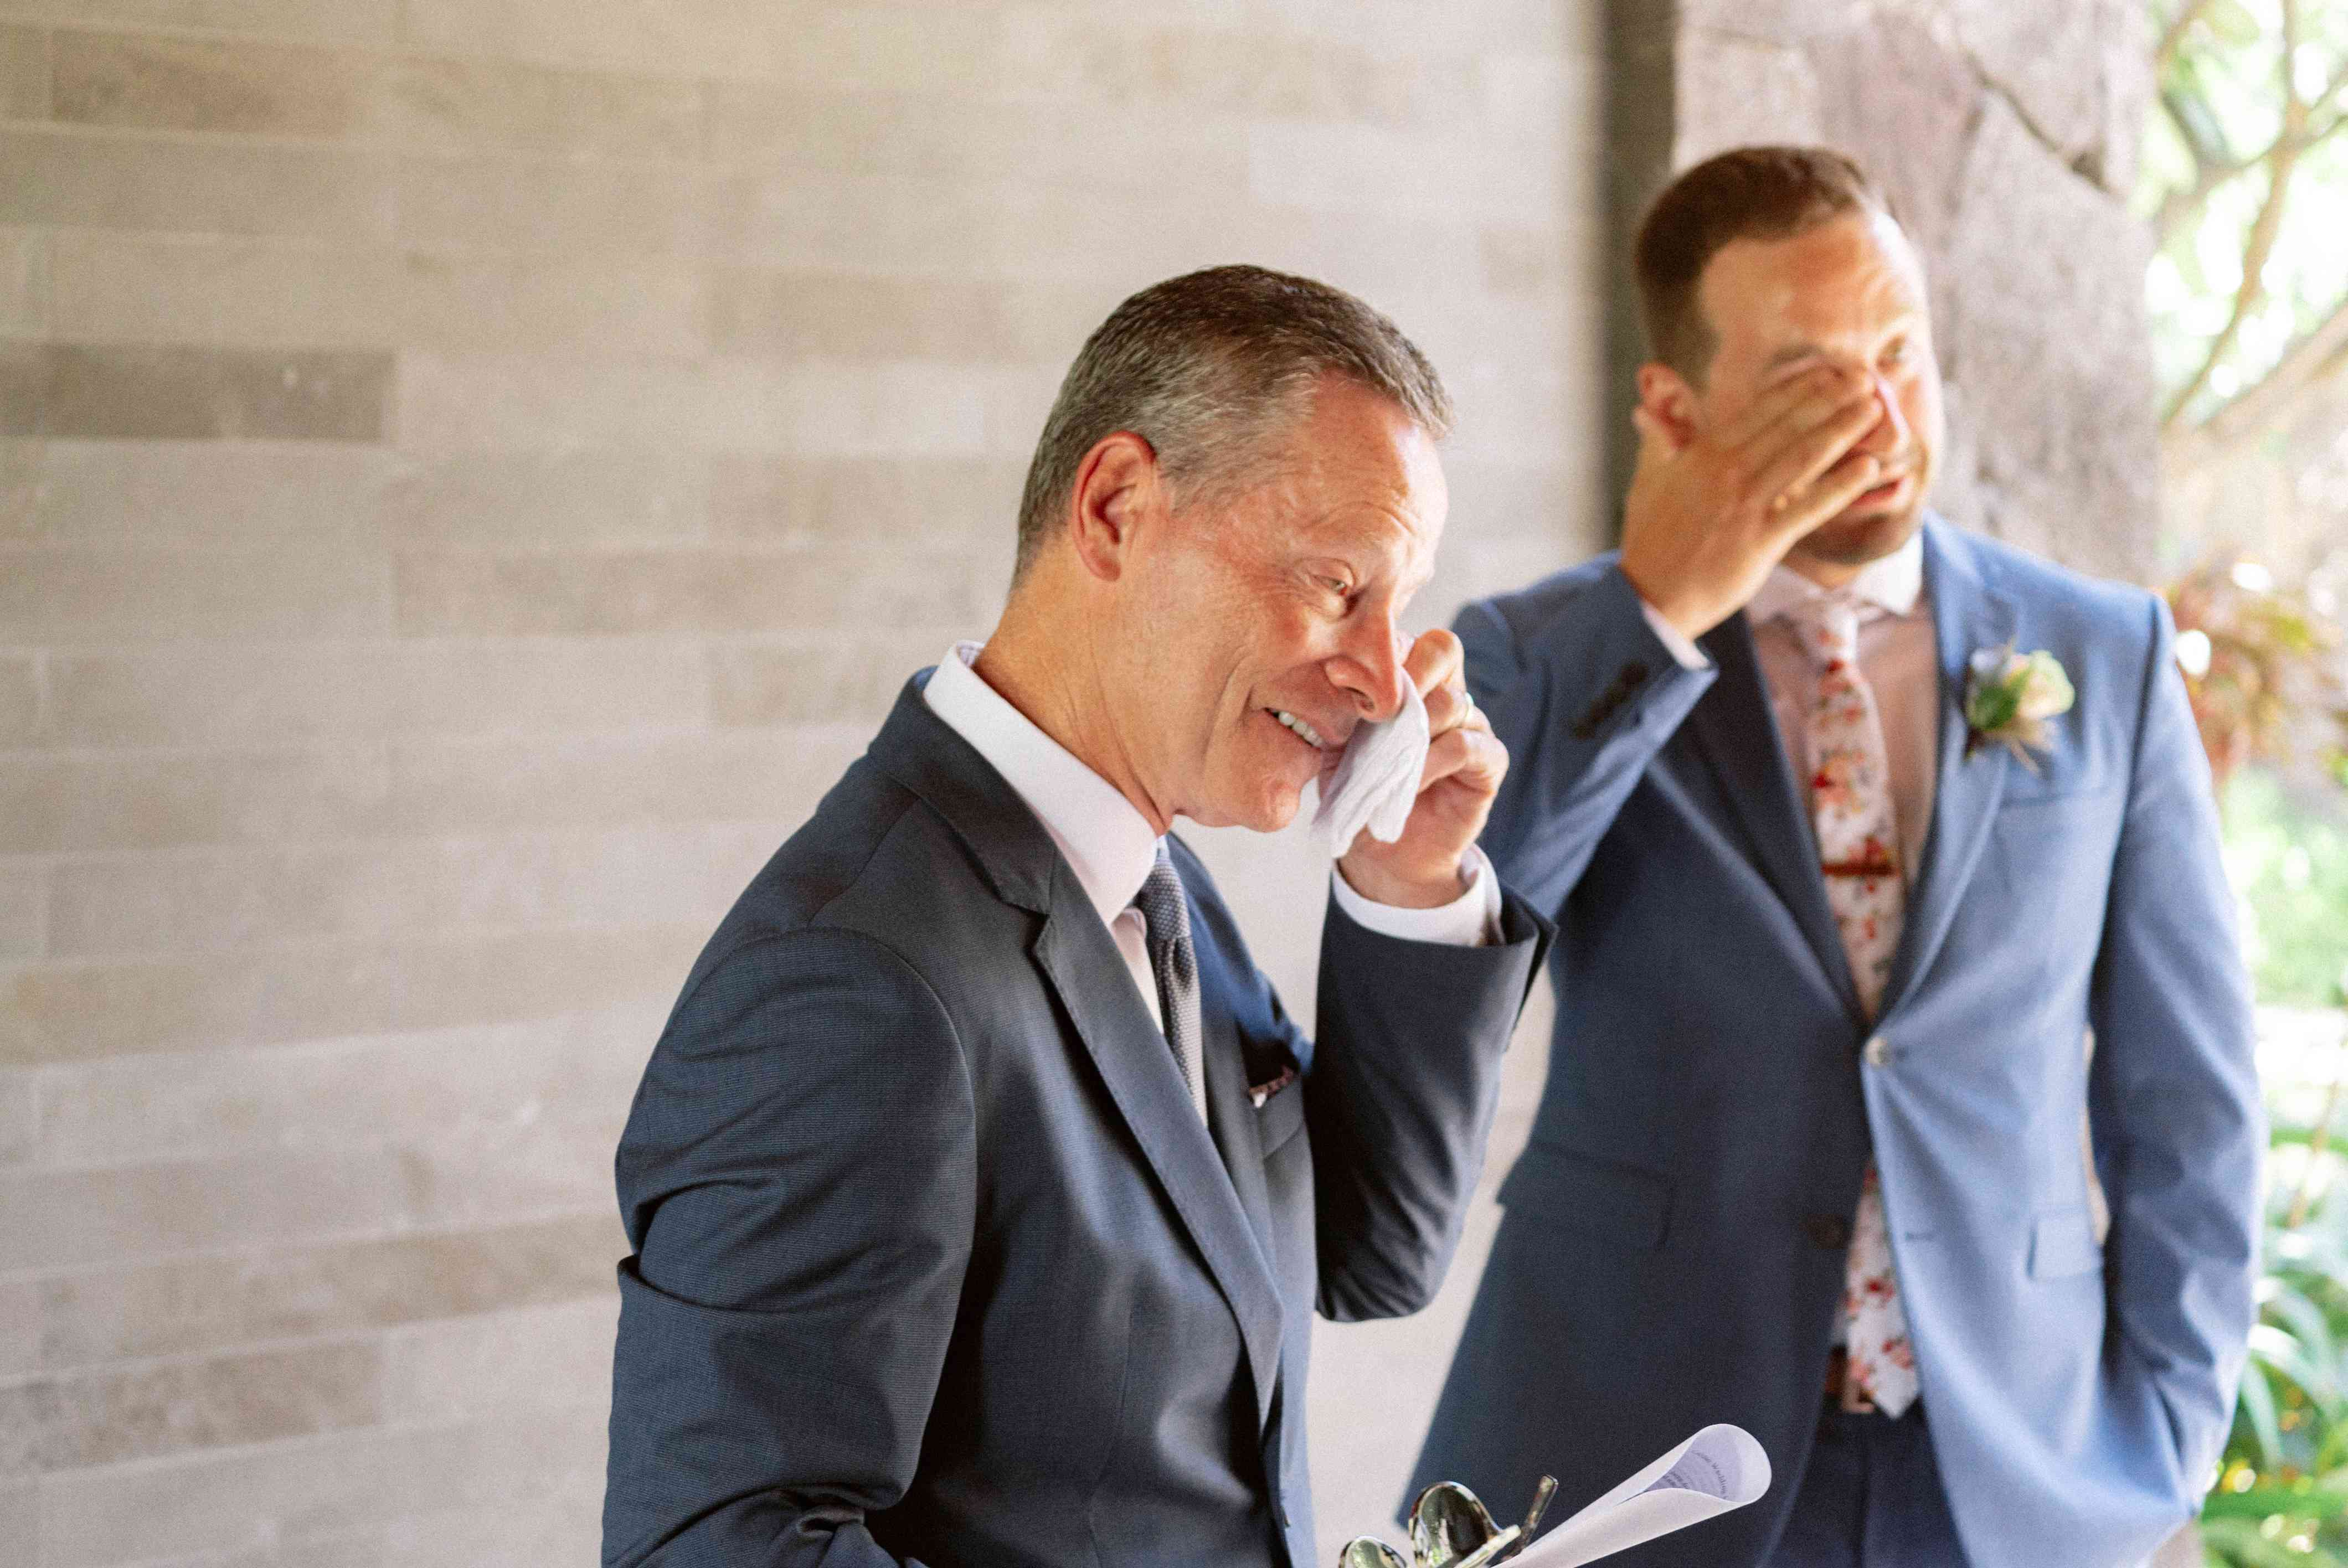 An emotional moment for the groom